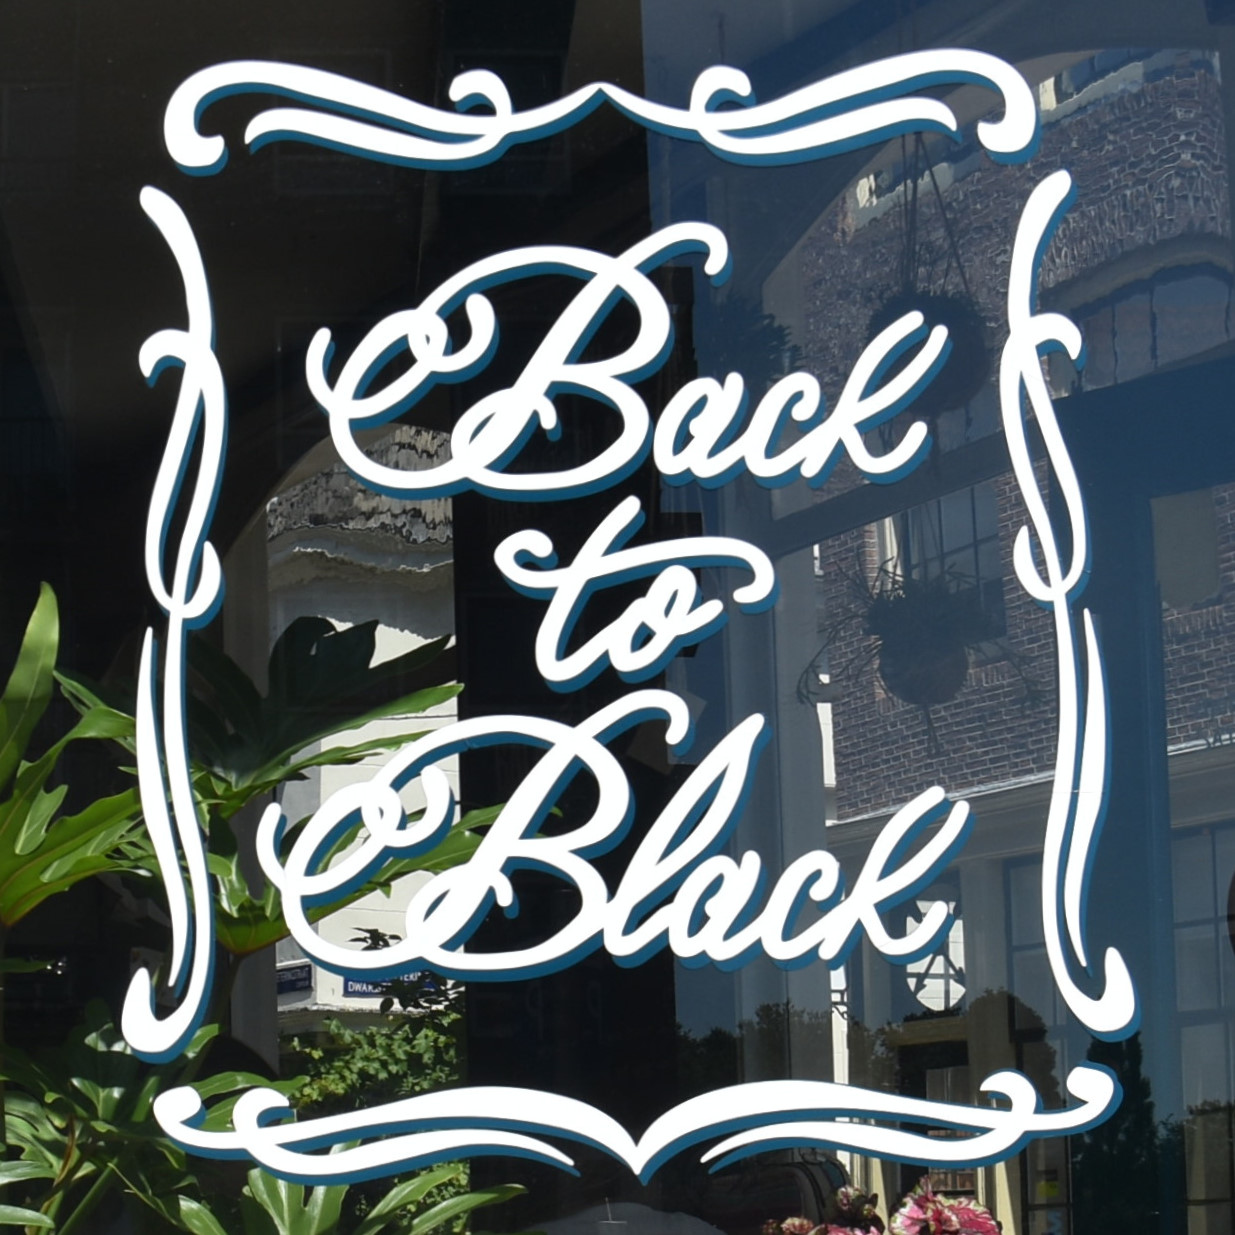 Details from the sign for Back to Black, written in a cursive script in the window of the coffee shop on Weteringstraat.